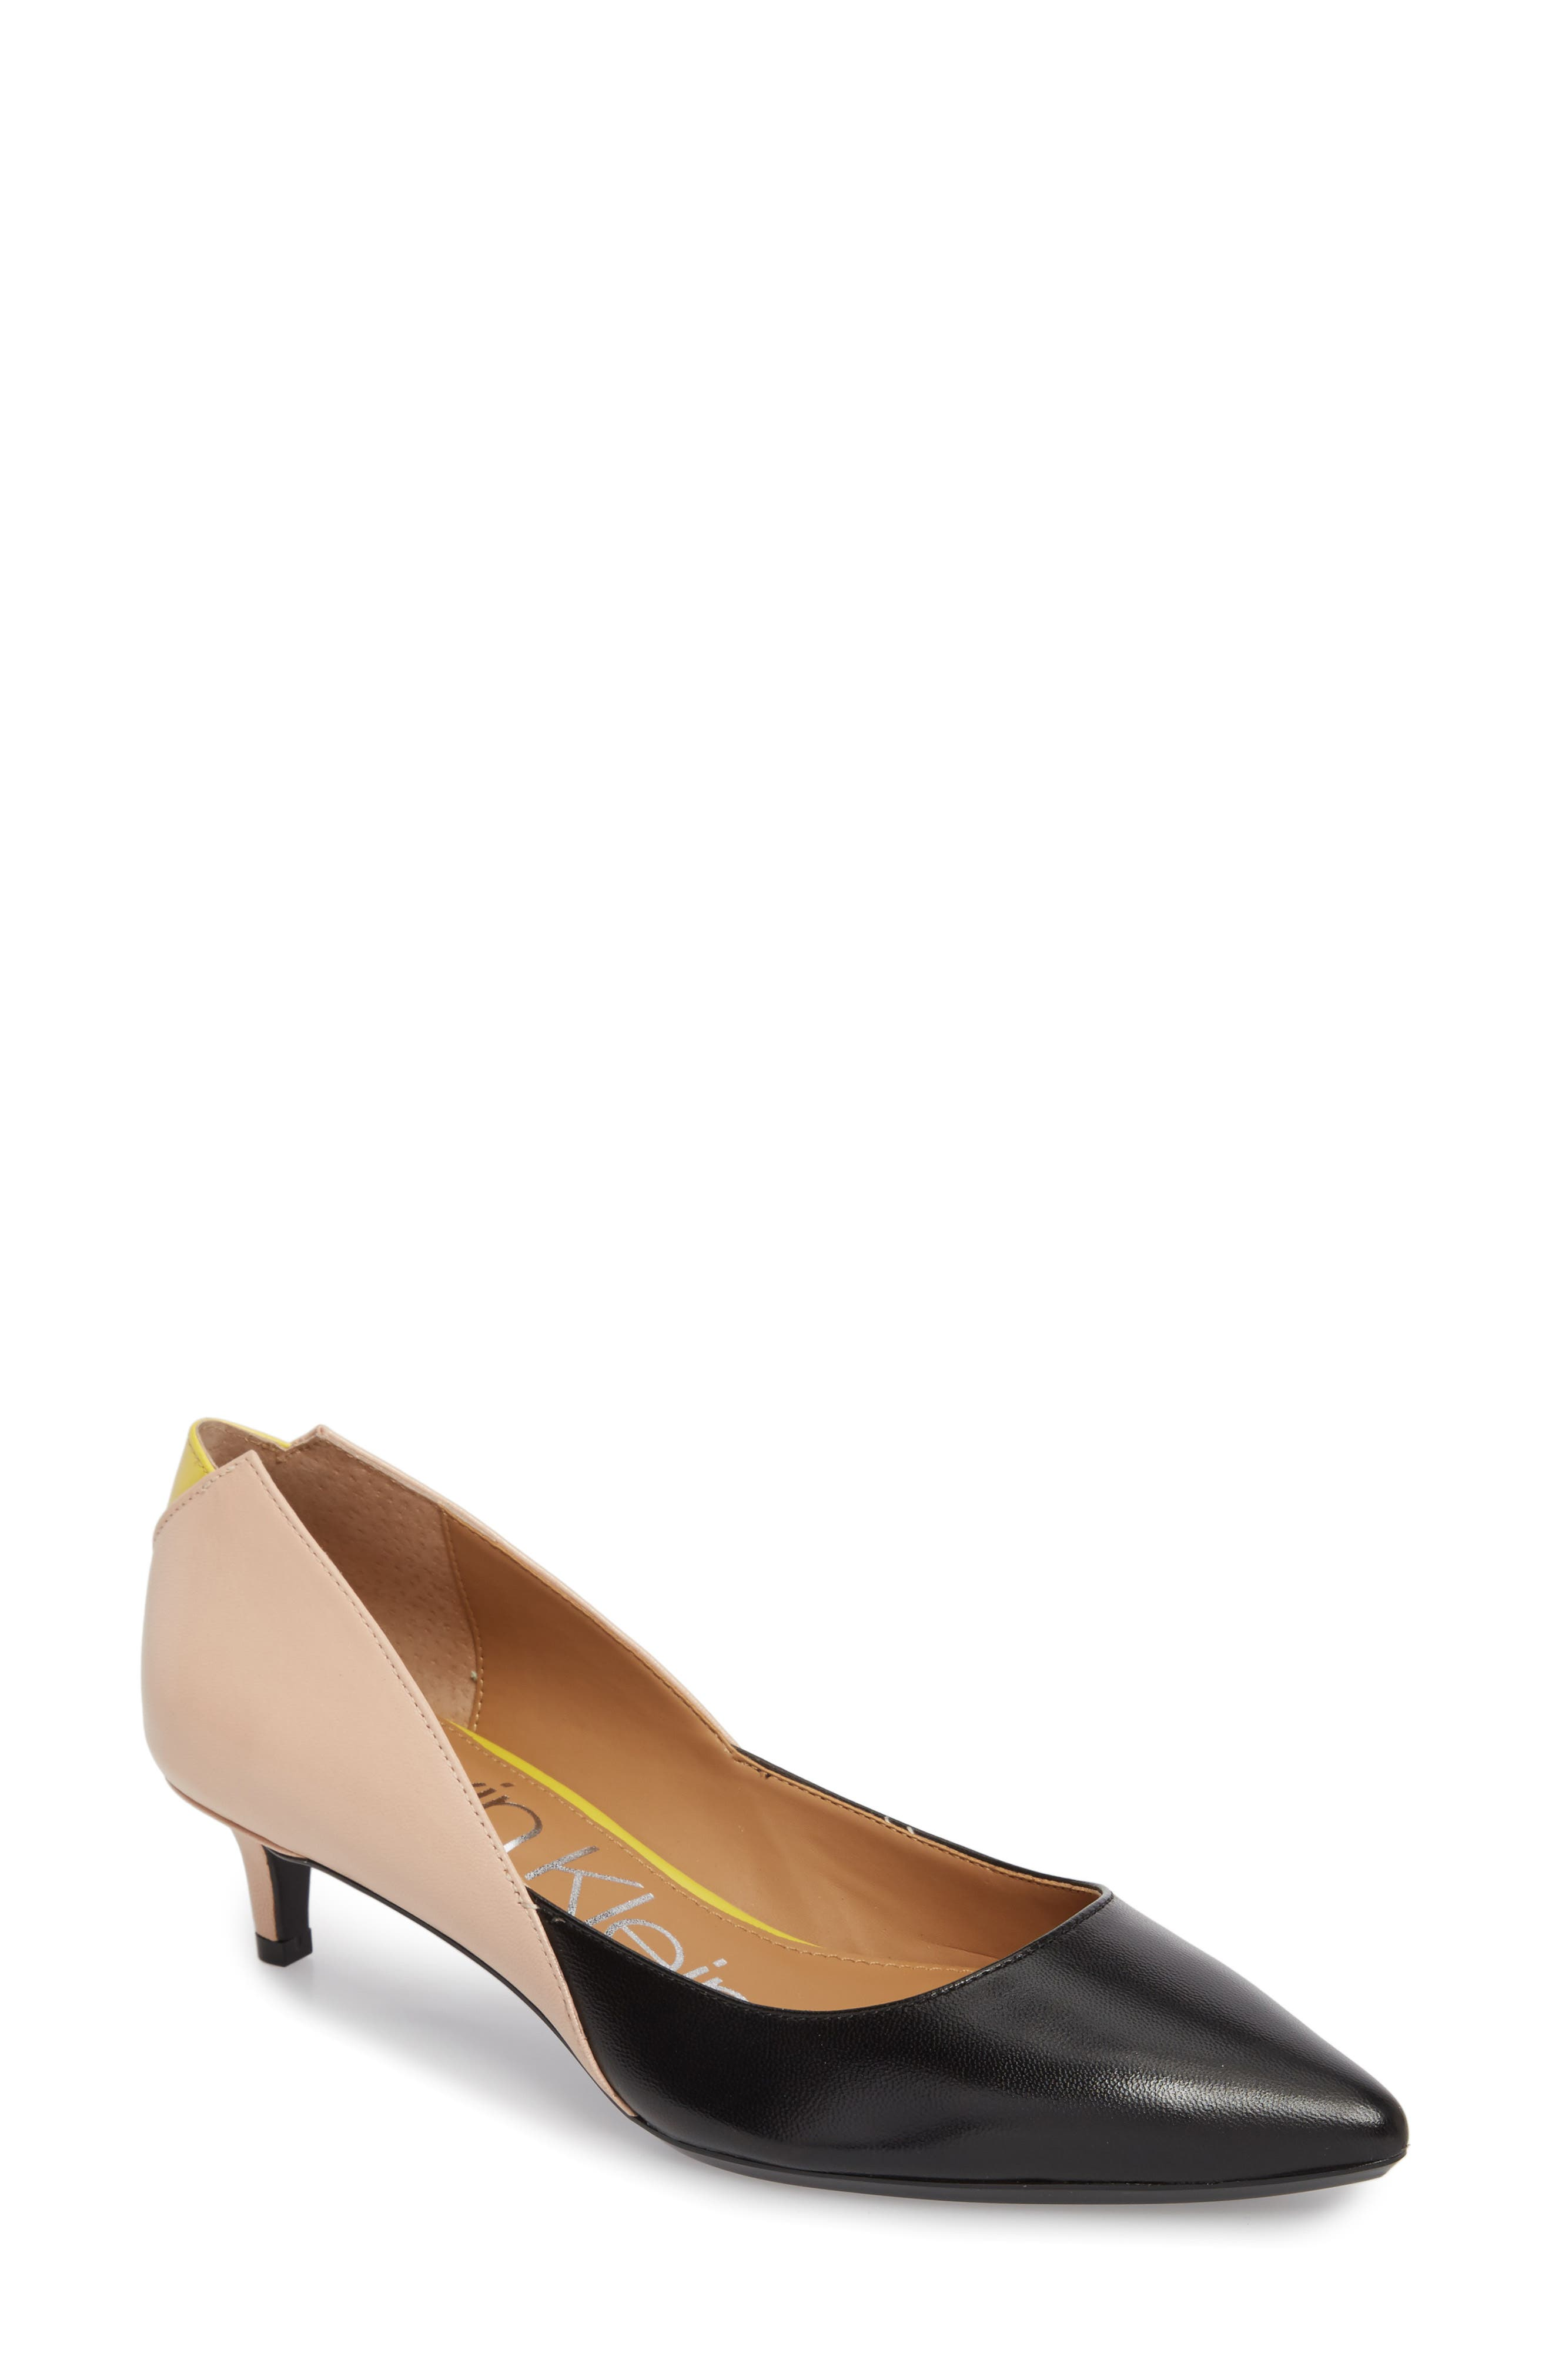 Alternate Image 1 Selected - Calvin Klein Grayce Pointy Toe Pump (Women)